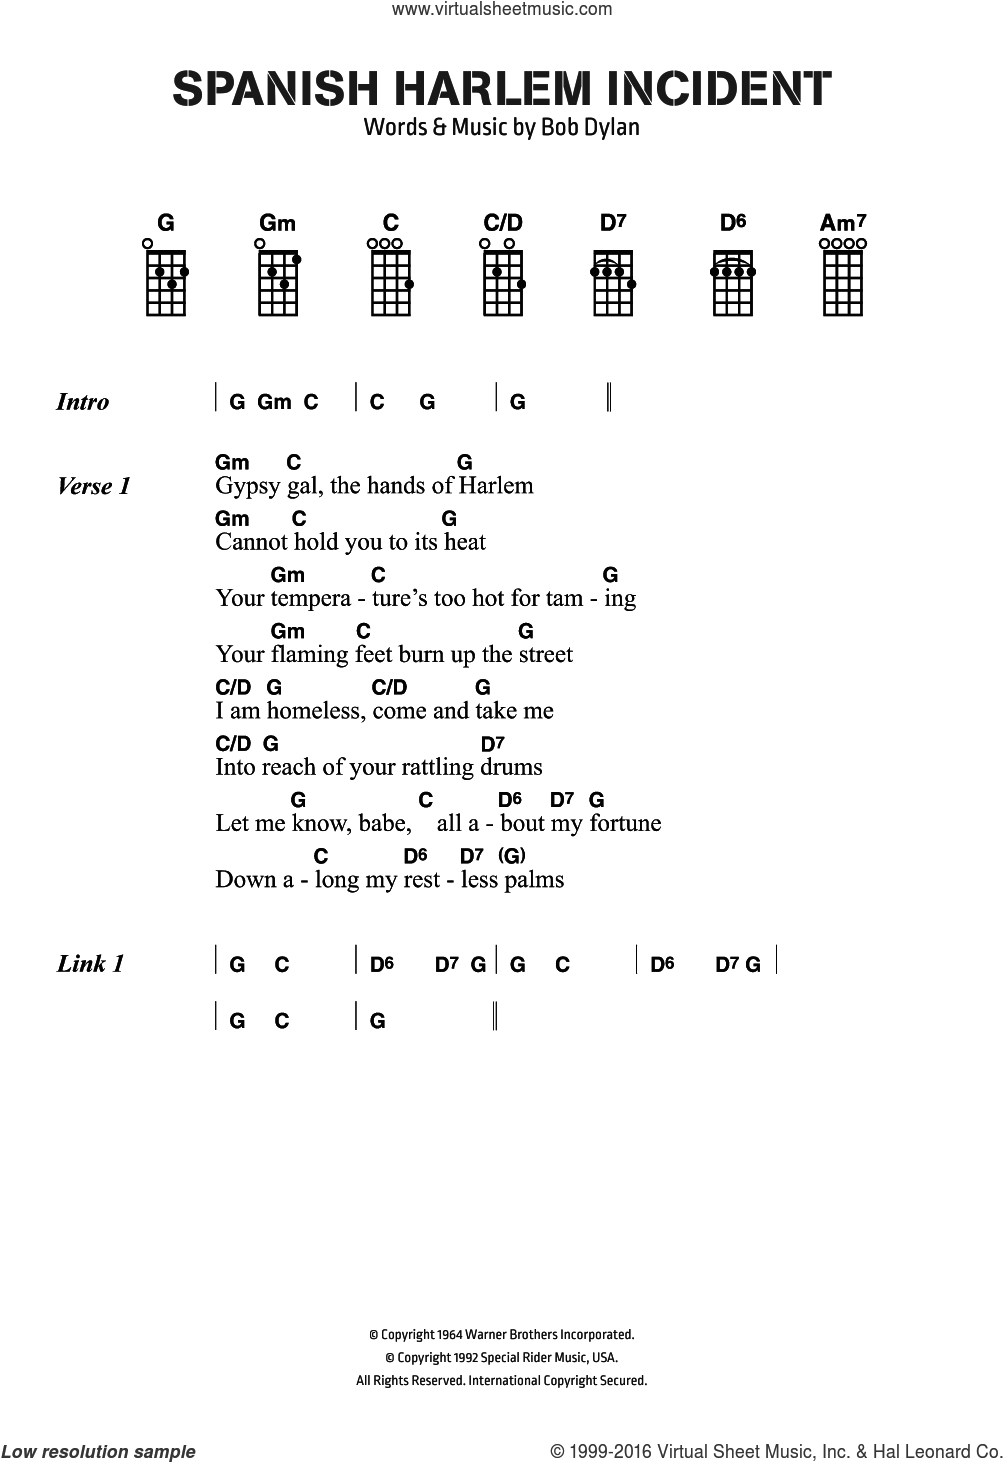 Spanish Harlem Incident sheet music for voice, piano or guitar by Bob Dylan, intermediate